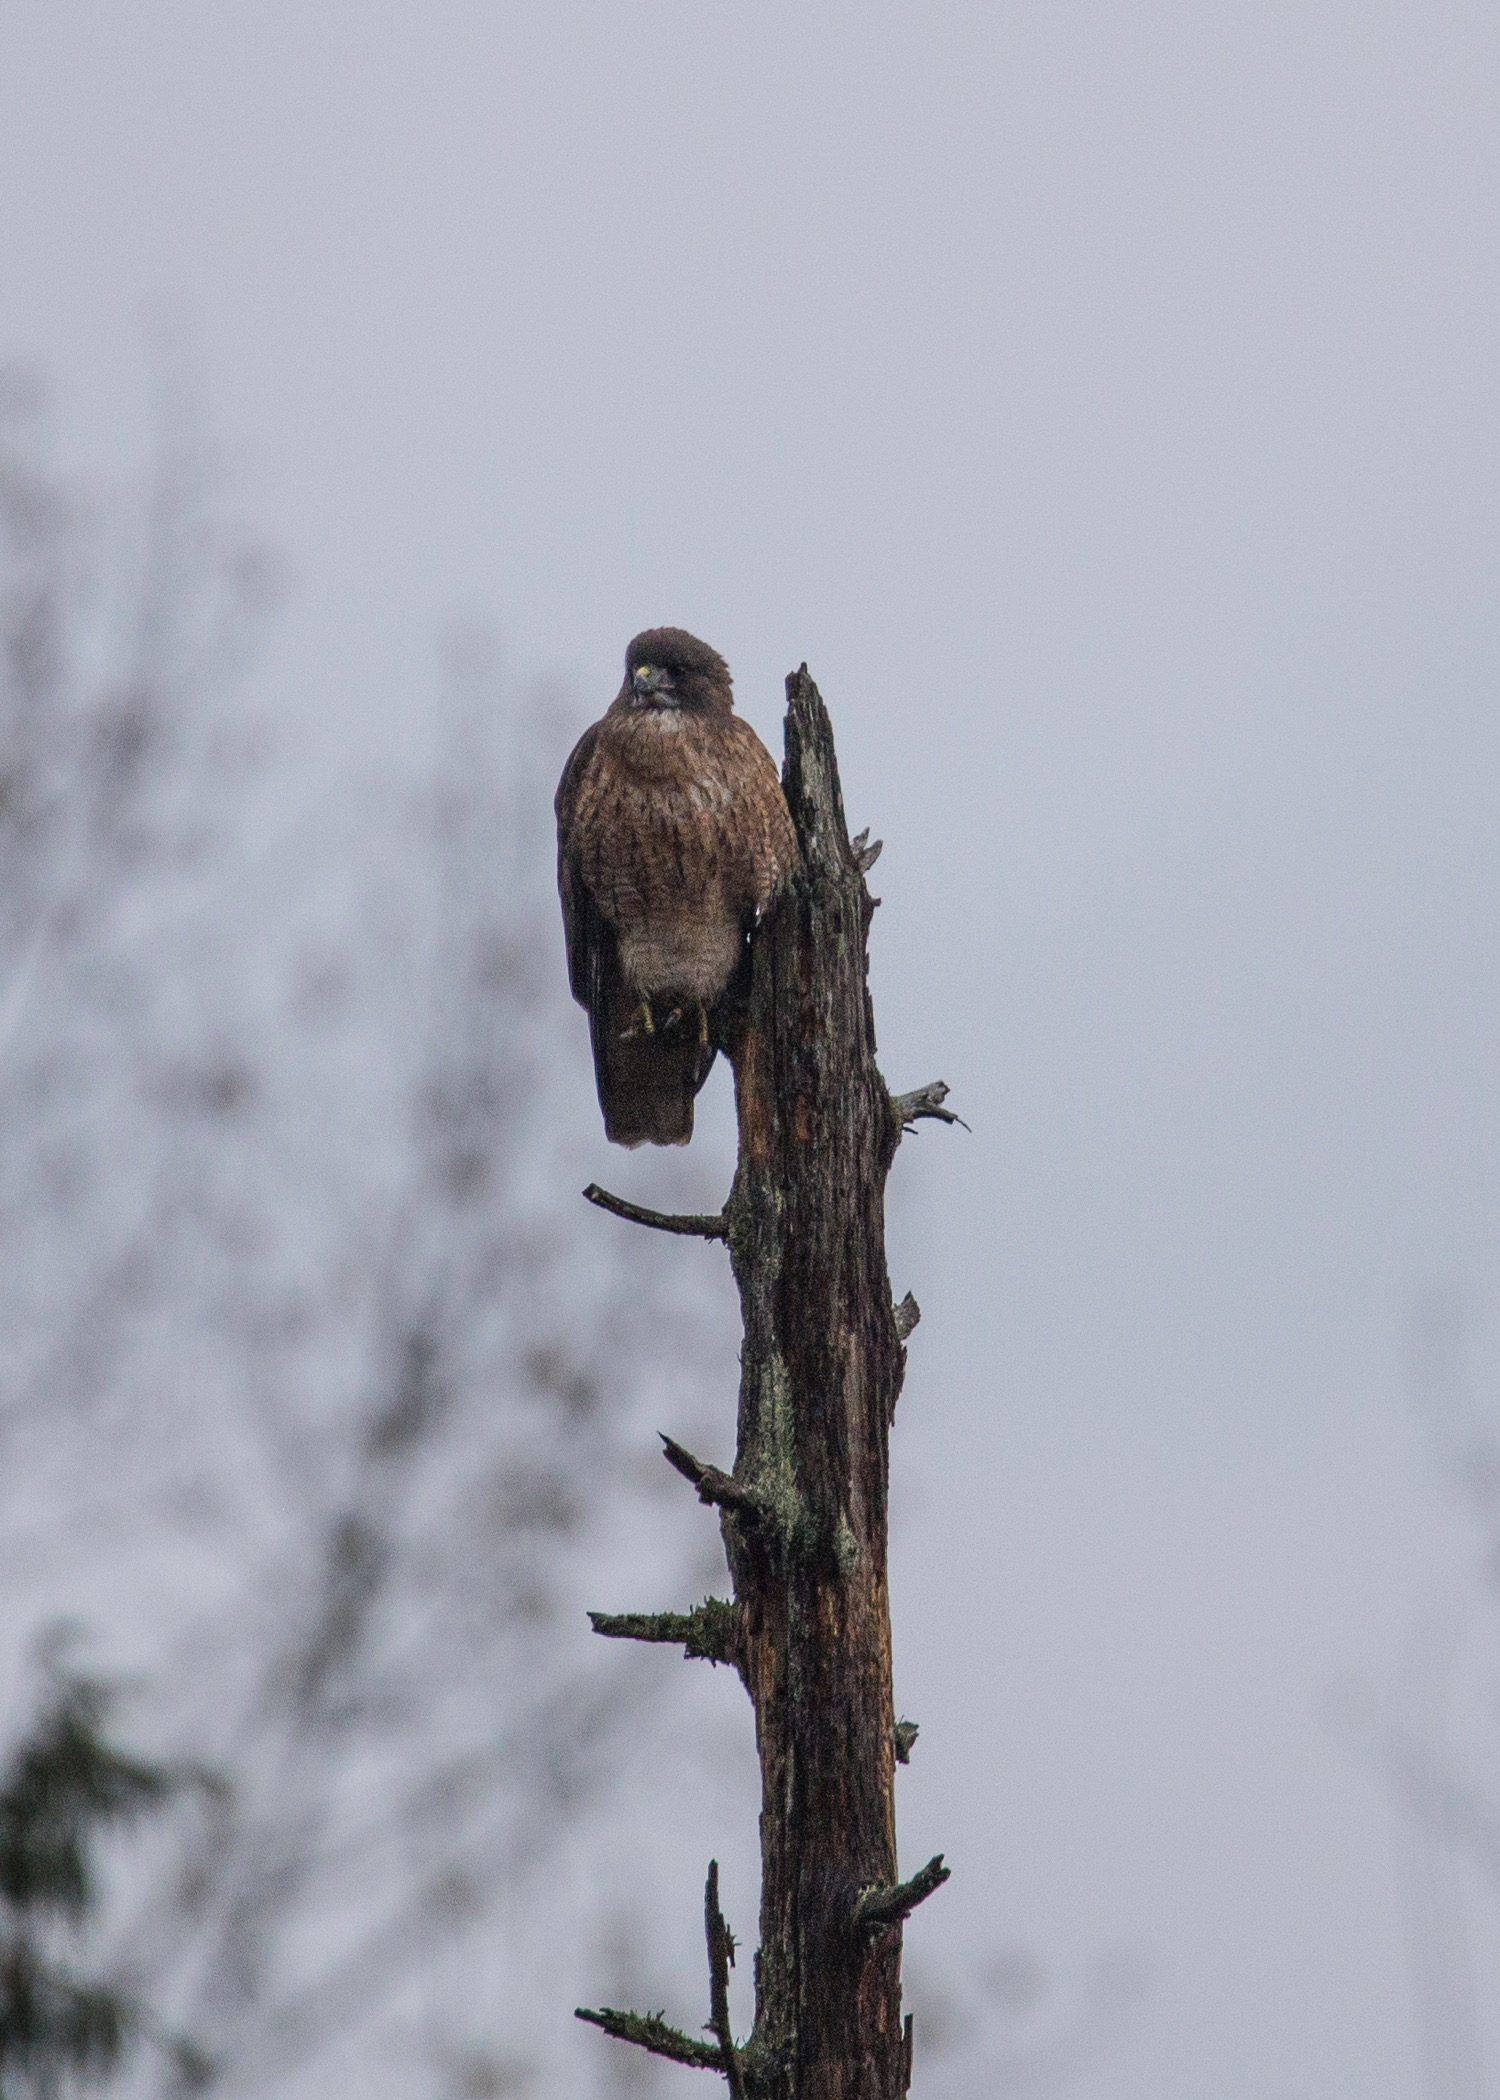 I think it's a redtailed hawk, but I'm not 100% certain.